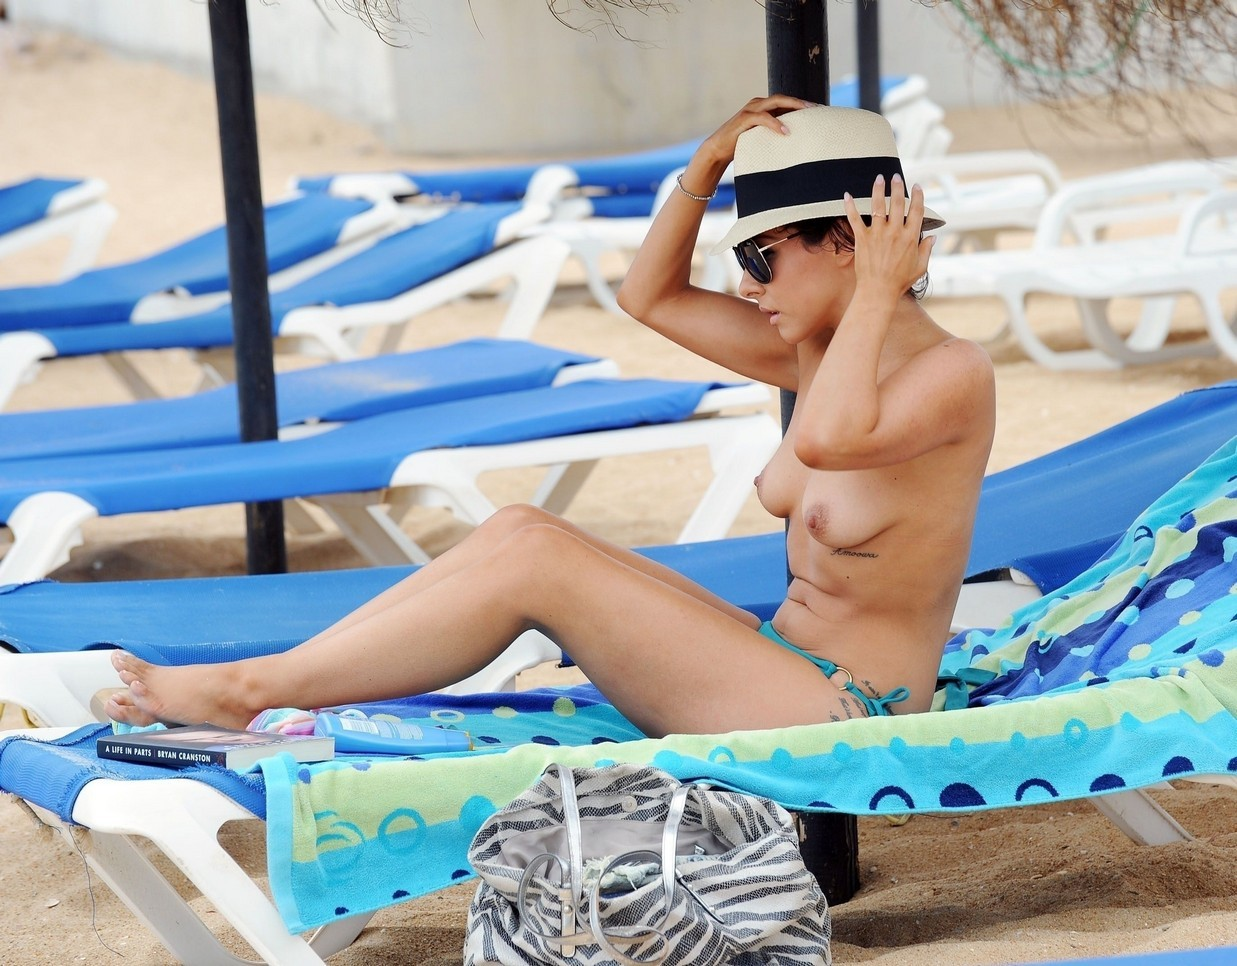 Roxanne Pallett Topless Photos, Beach Body